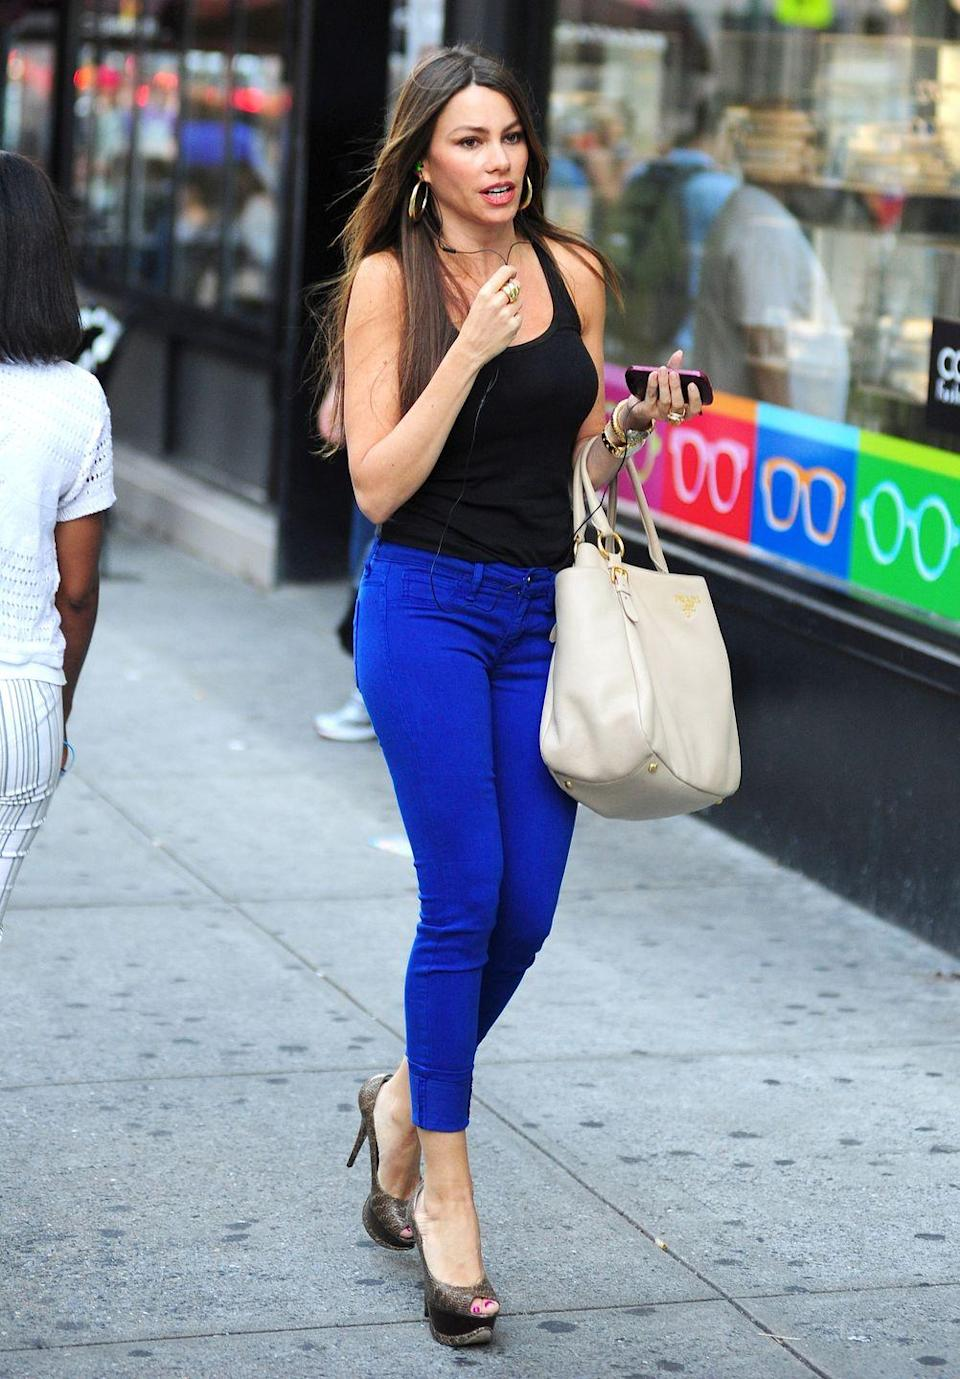 """<p>Colored denim — bright greens, reds, purples, and more — <span class=""""redactor-invisible-space"""">have their moment in the sun. For Sofia Vergara, cobalt is the trendy color of choice. </span></p>"""